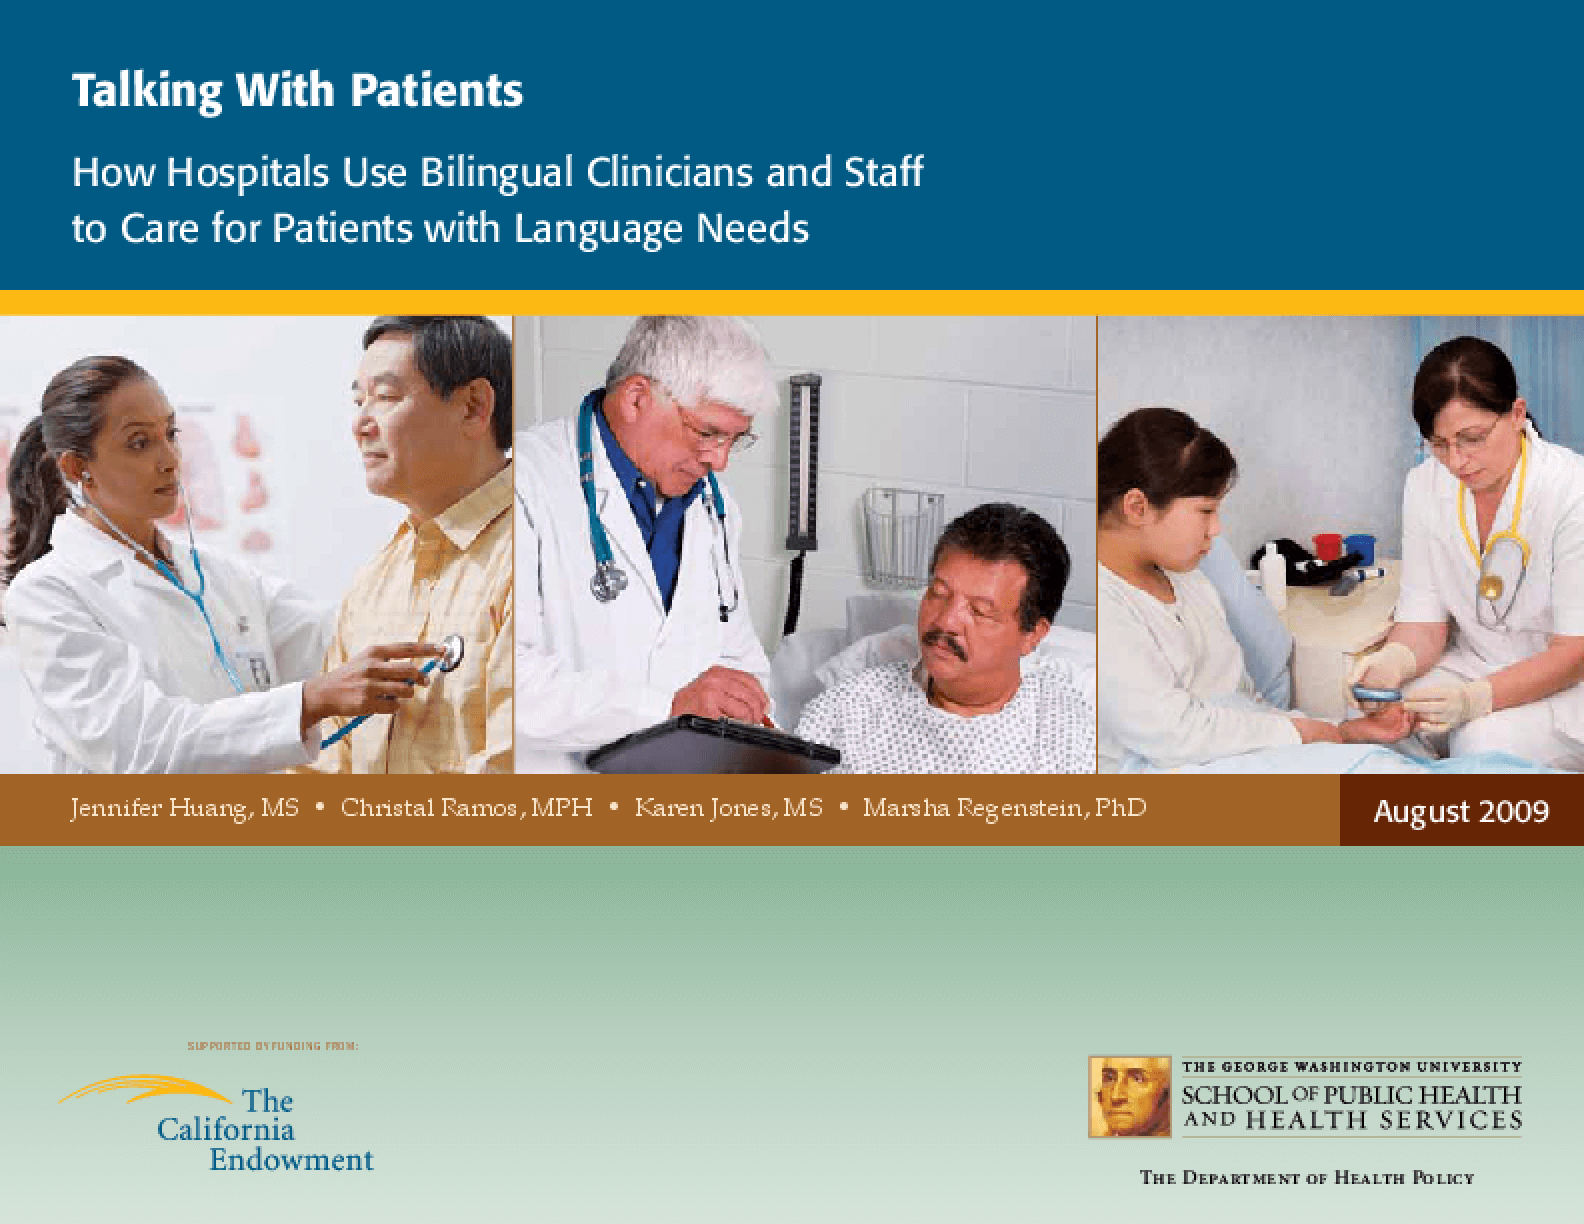 Talking With Patients: How Hospitals Use Bilingual Clinicians and Staff to Care for Patients With Language Needs